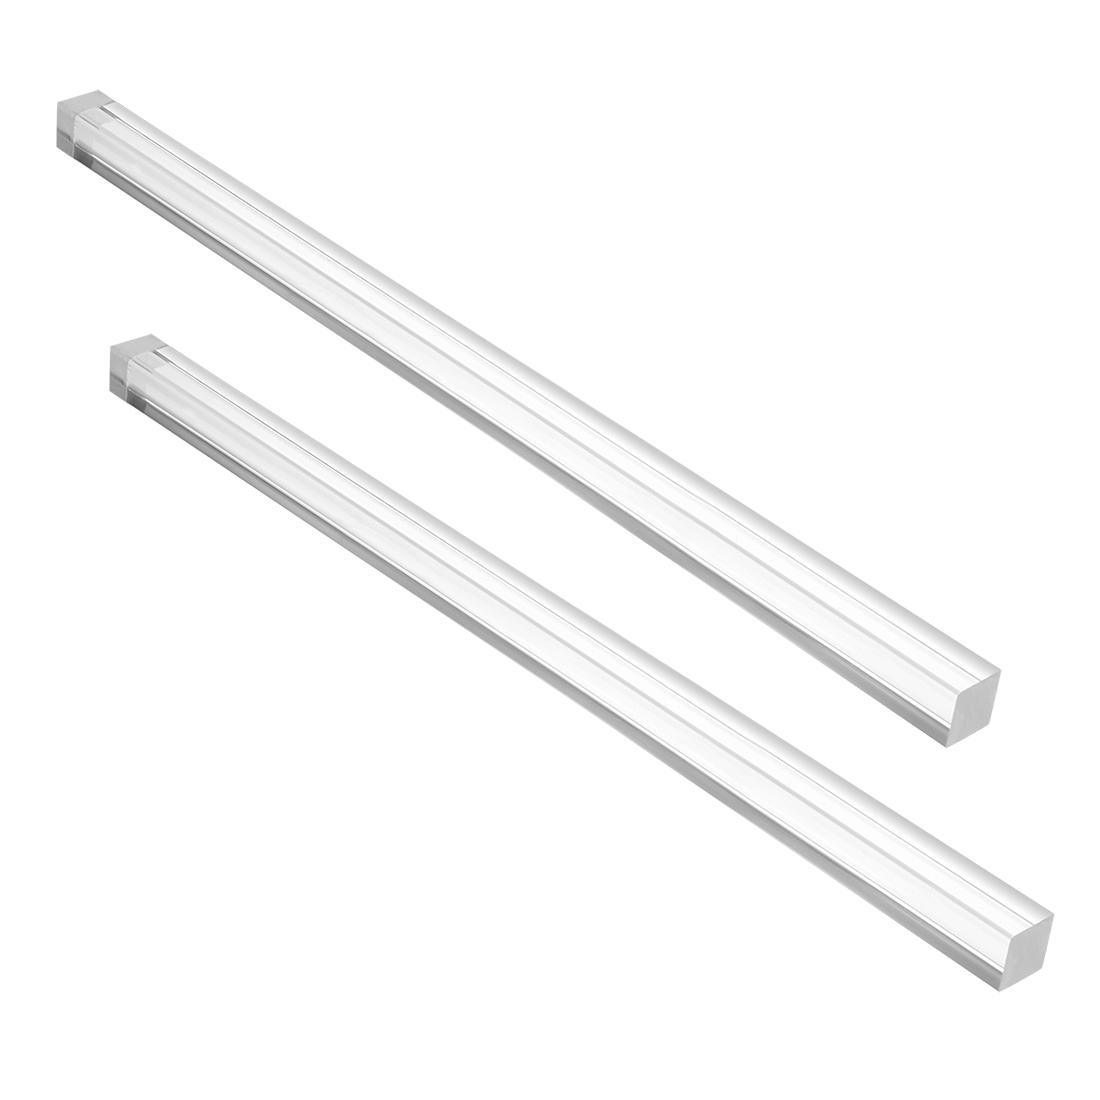 "12mmx12mm 10"" Long Acrylic Rectangular Shaped Rod PMMA Bar Clear 2pcs"